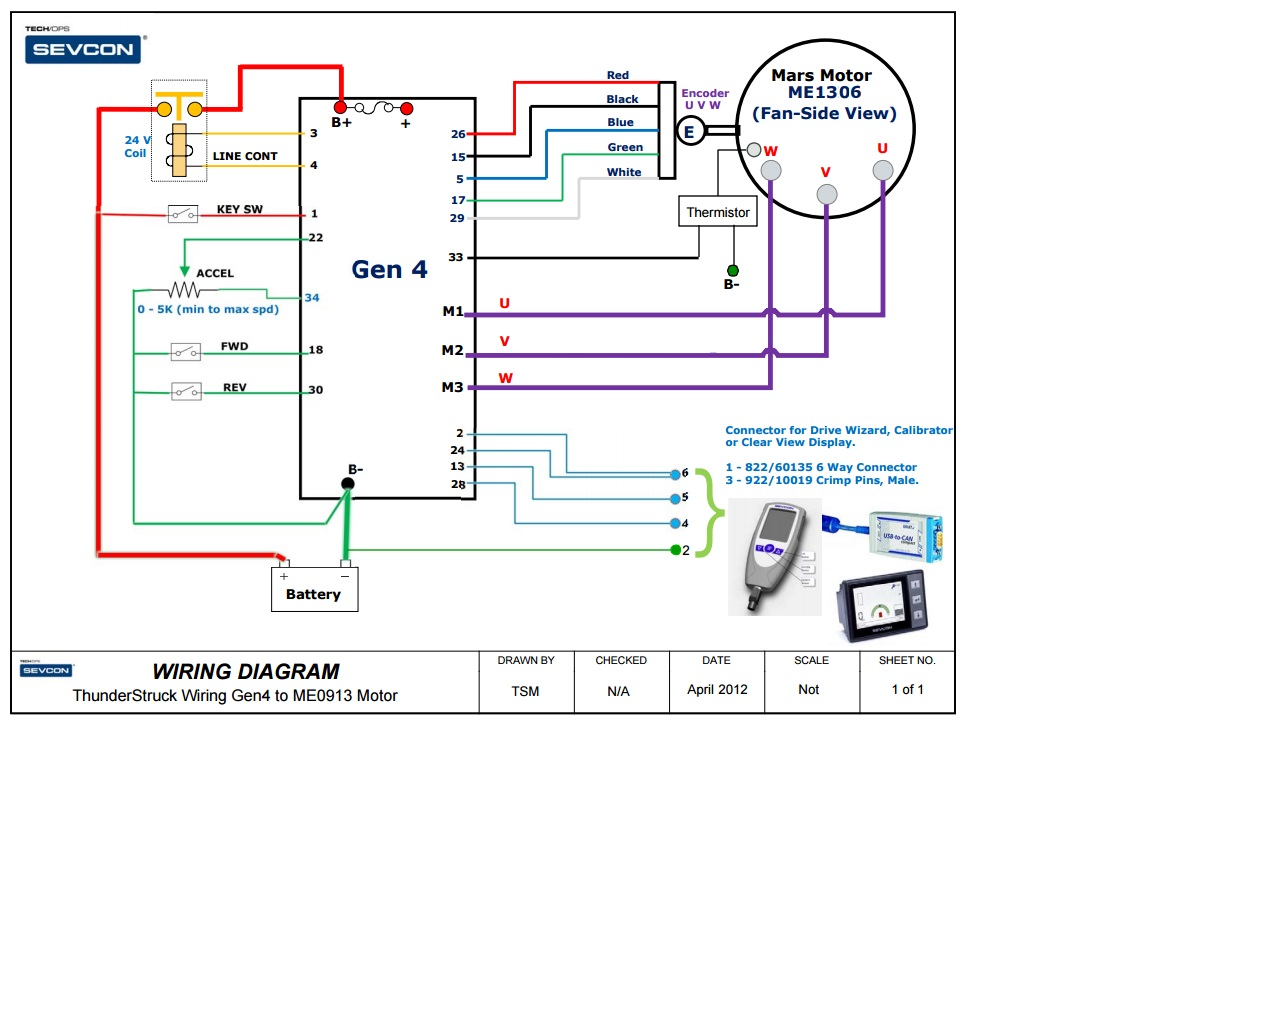 Thunderstruck Motors Manuals Data Sheets Understanding Electrical Diagram Gen4 1306 Wiring For Pb 8